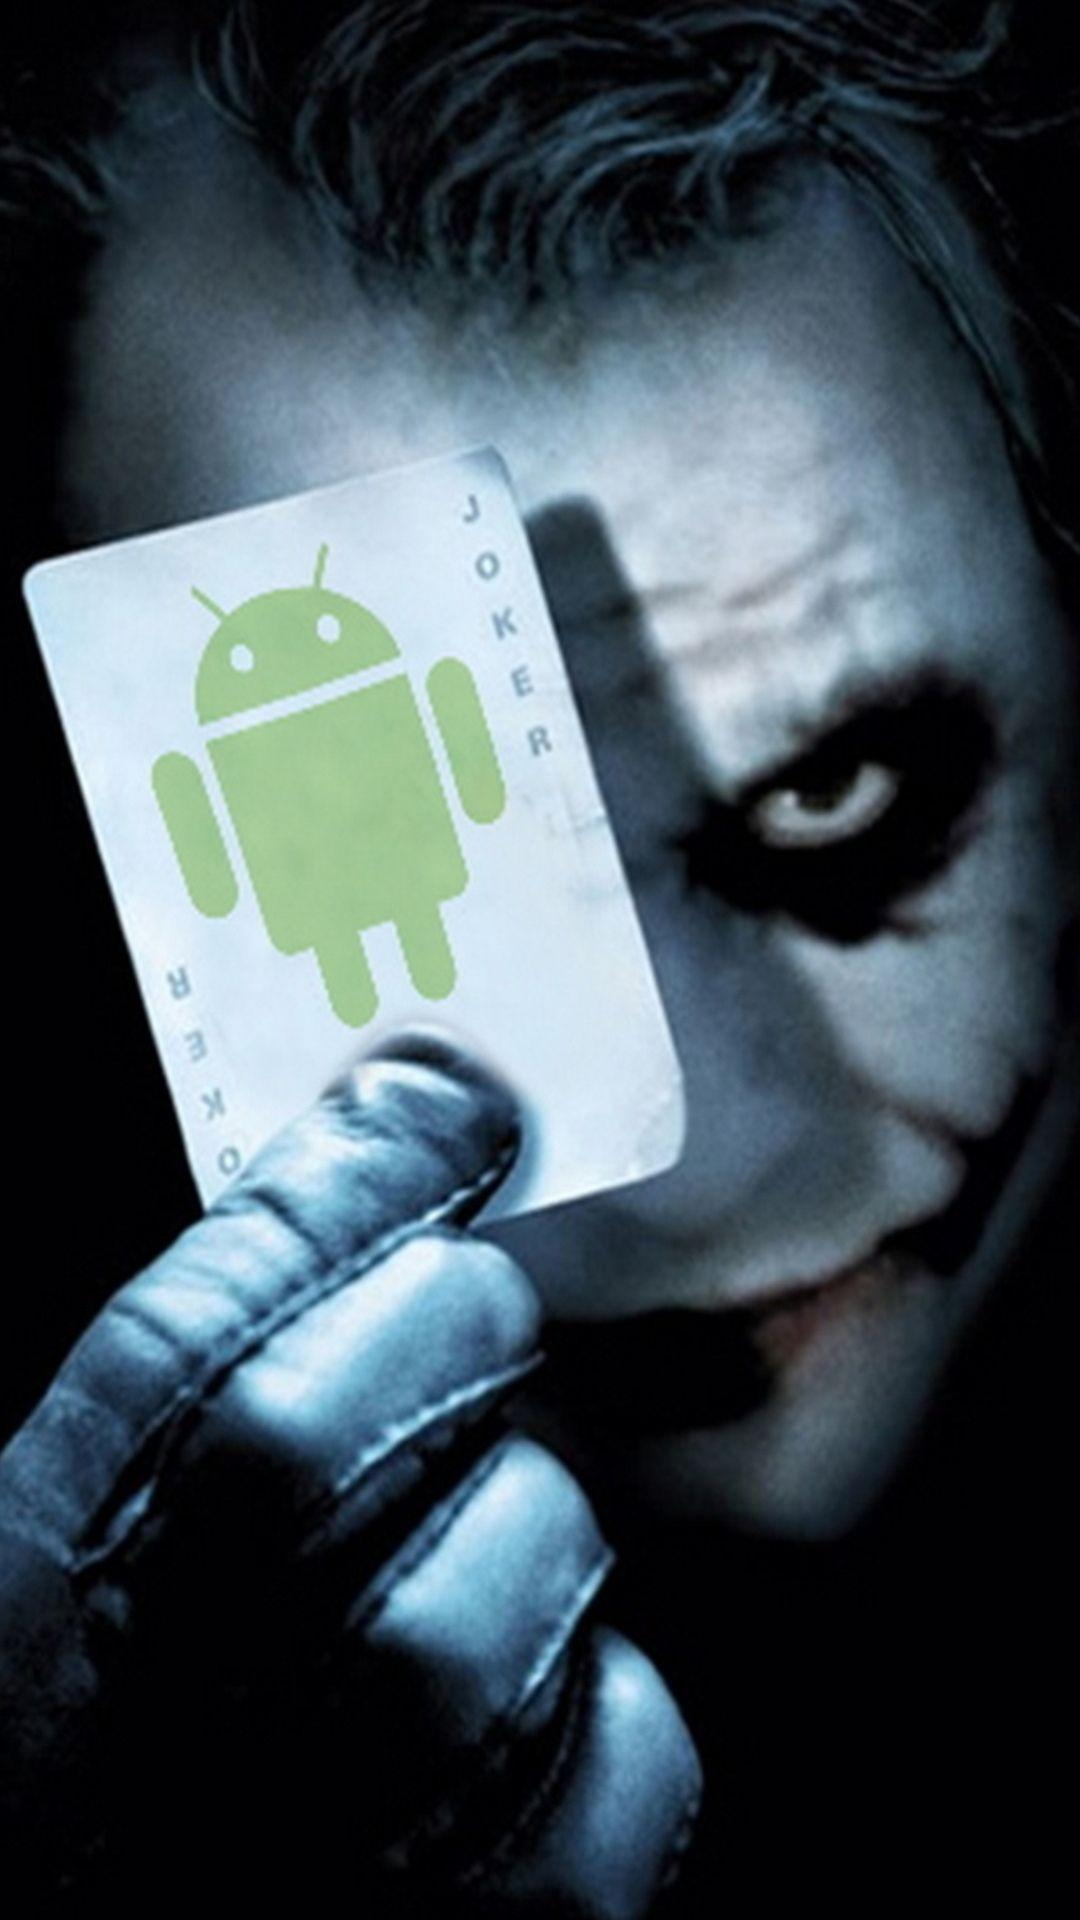 Android Joker Face Android Wallpapers free download